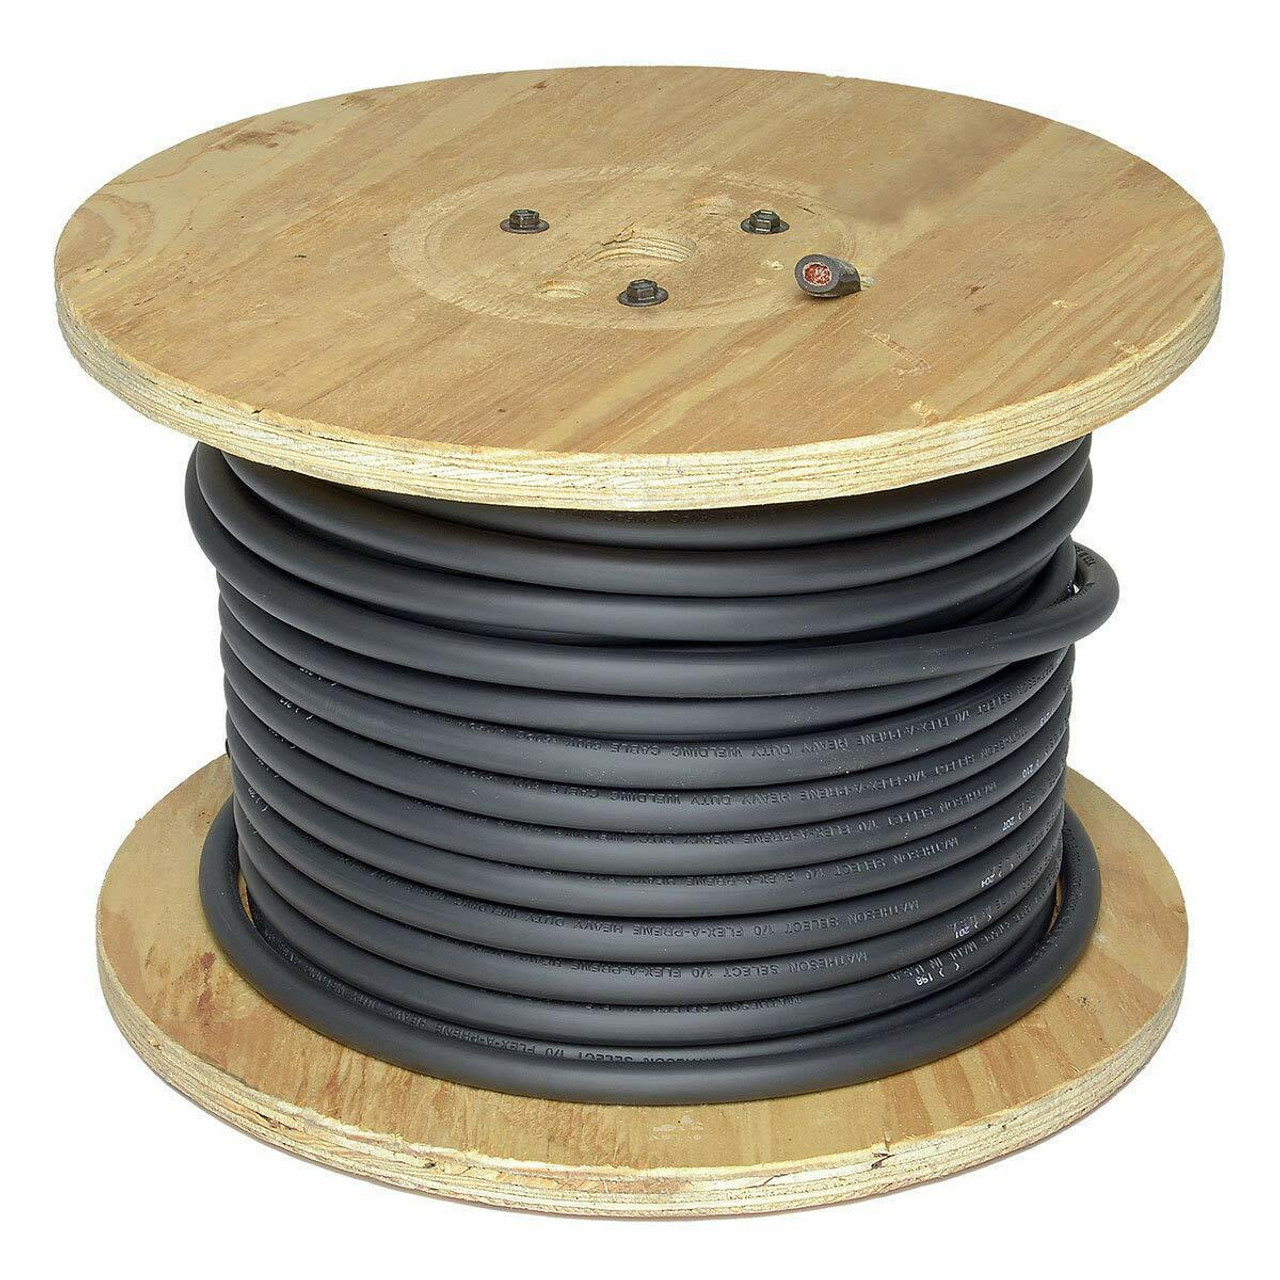 500 Foot Spool of Black 2/0 Flex-A-Prene Welding and Battery Cable Made In USA